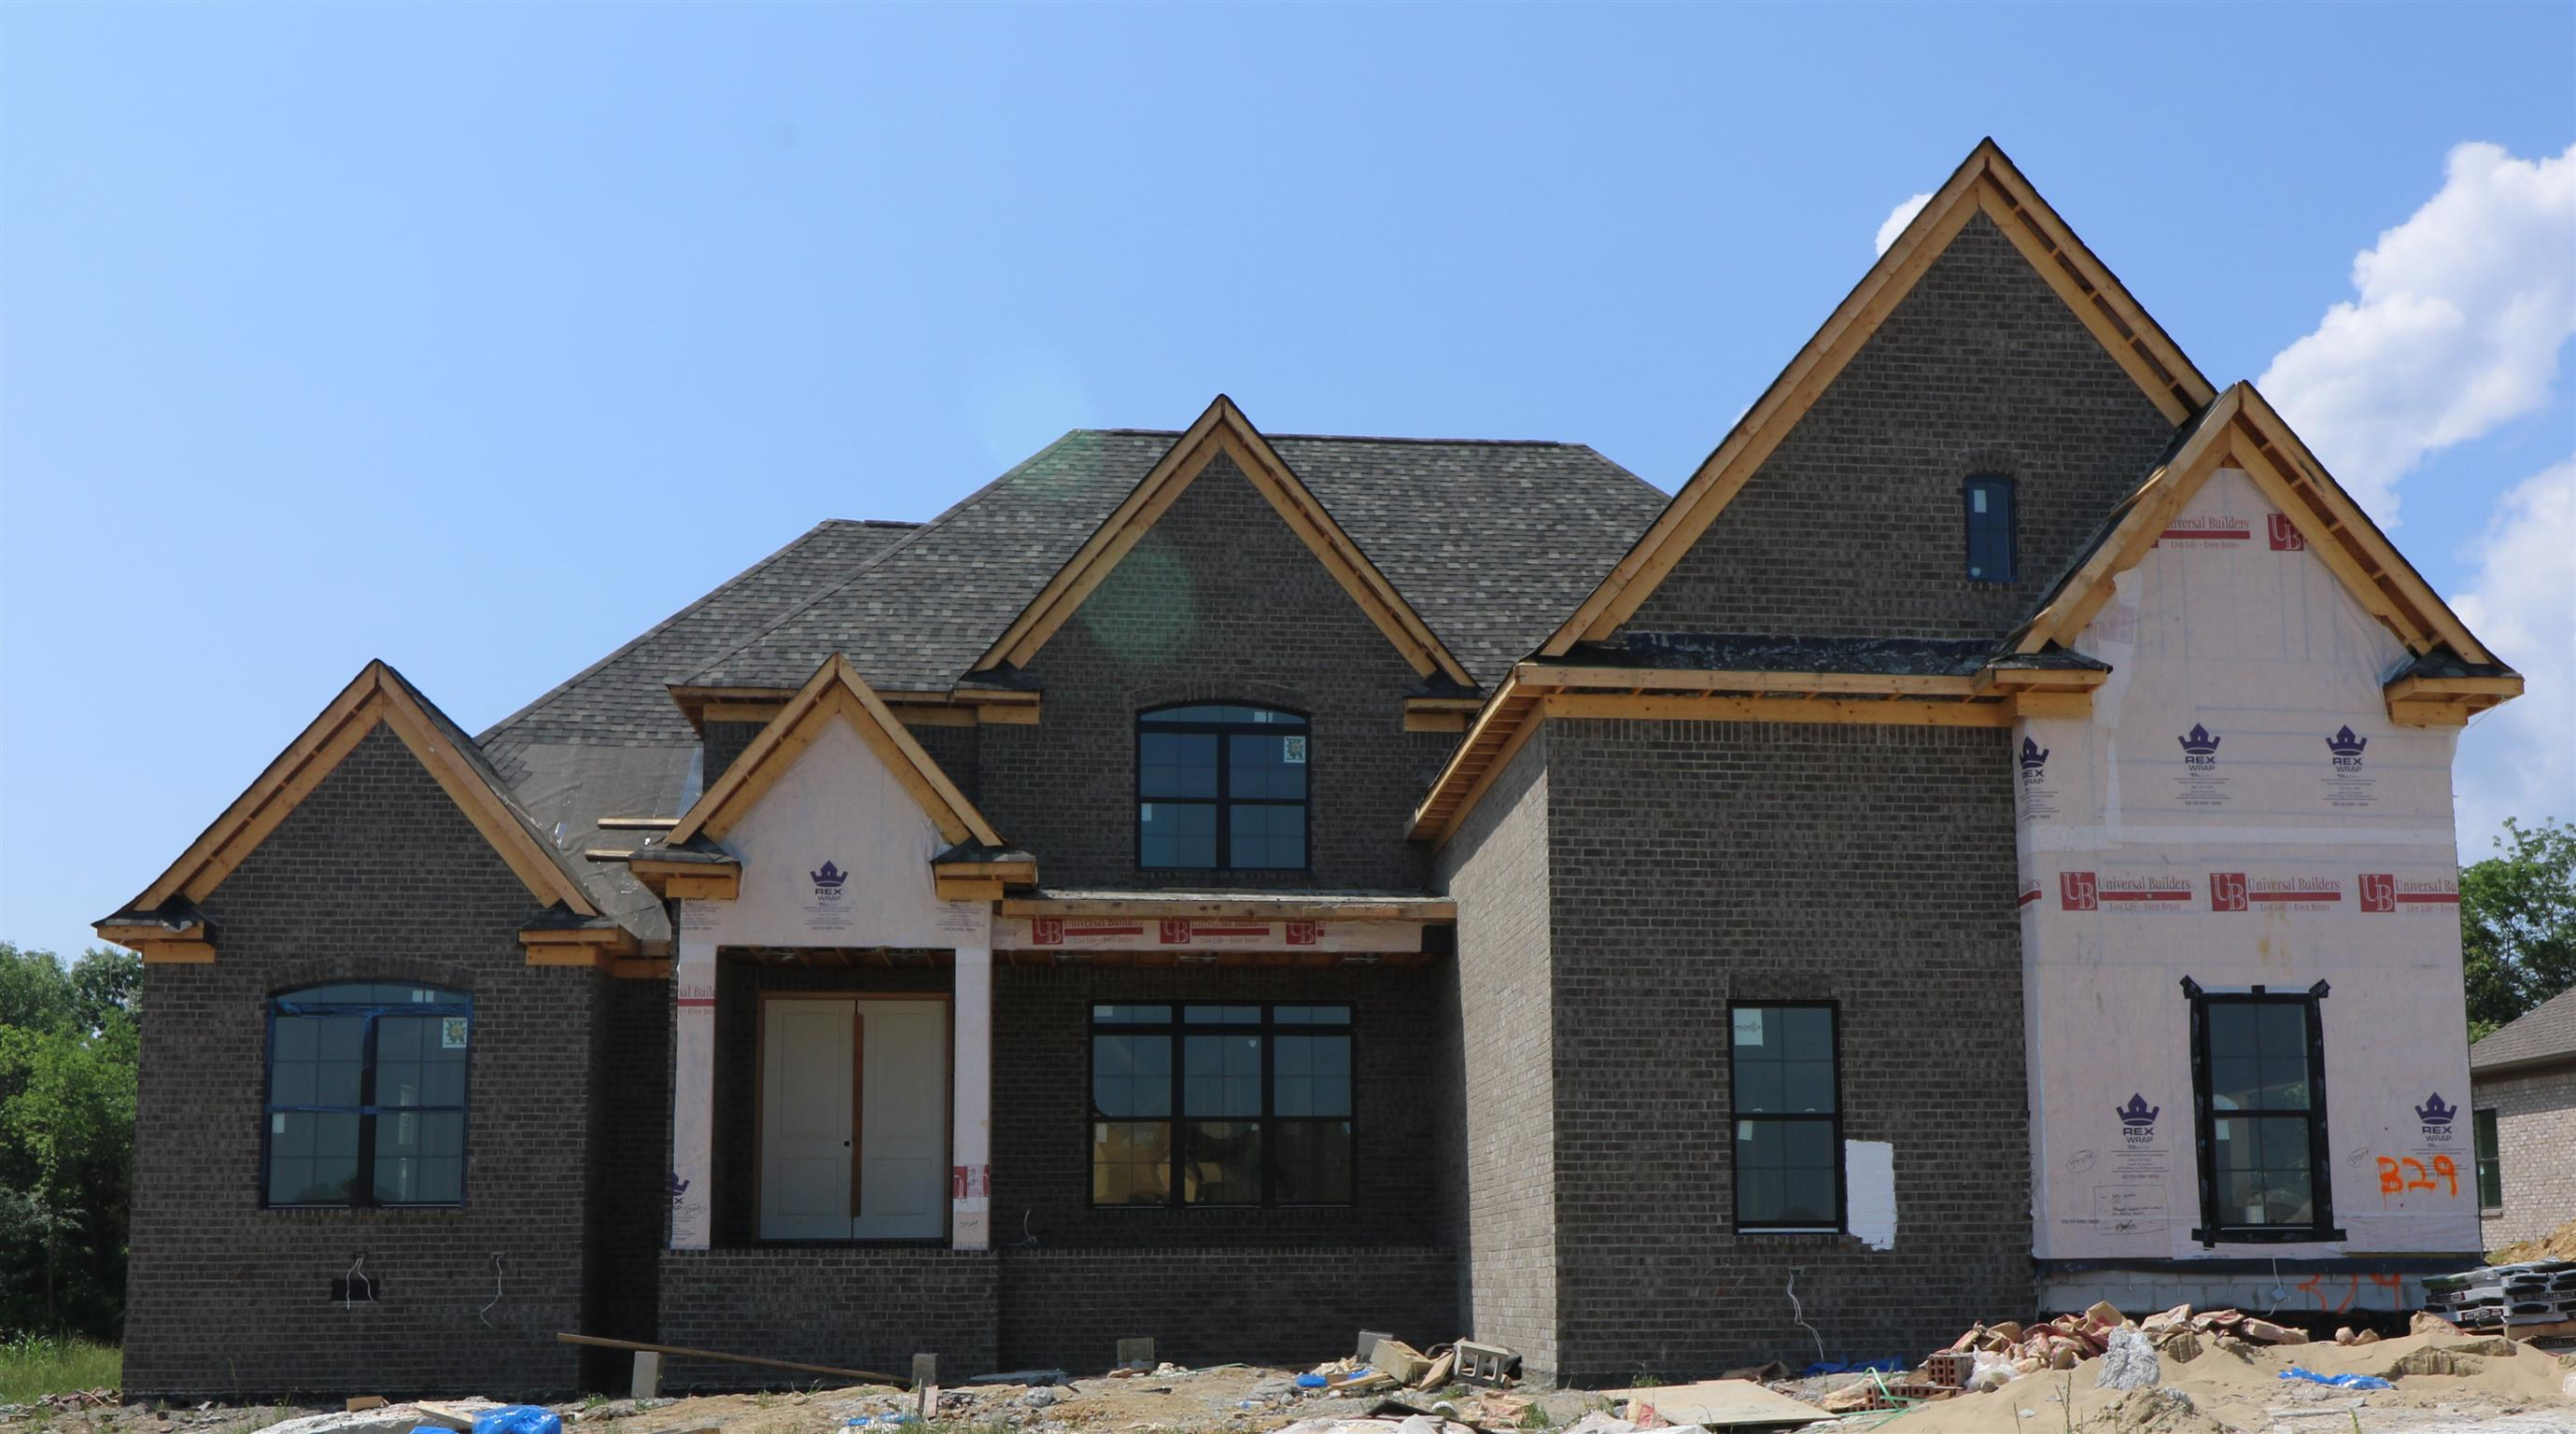 $769,900 - 4Br/5Ba -  for Sale in Wright Farms Sec. 5a, Mount Juliet